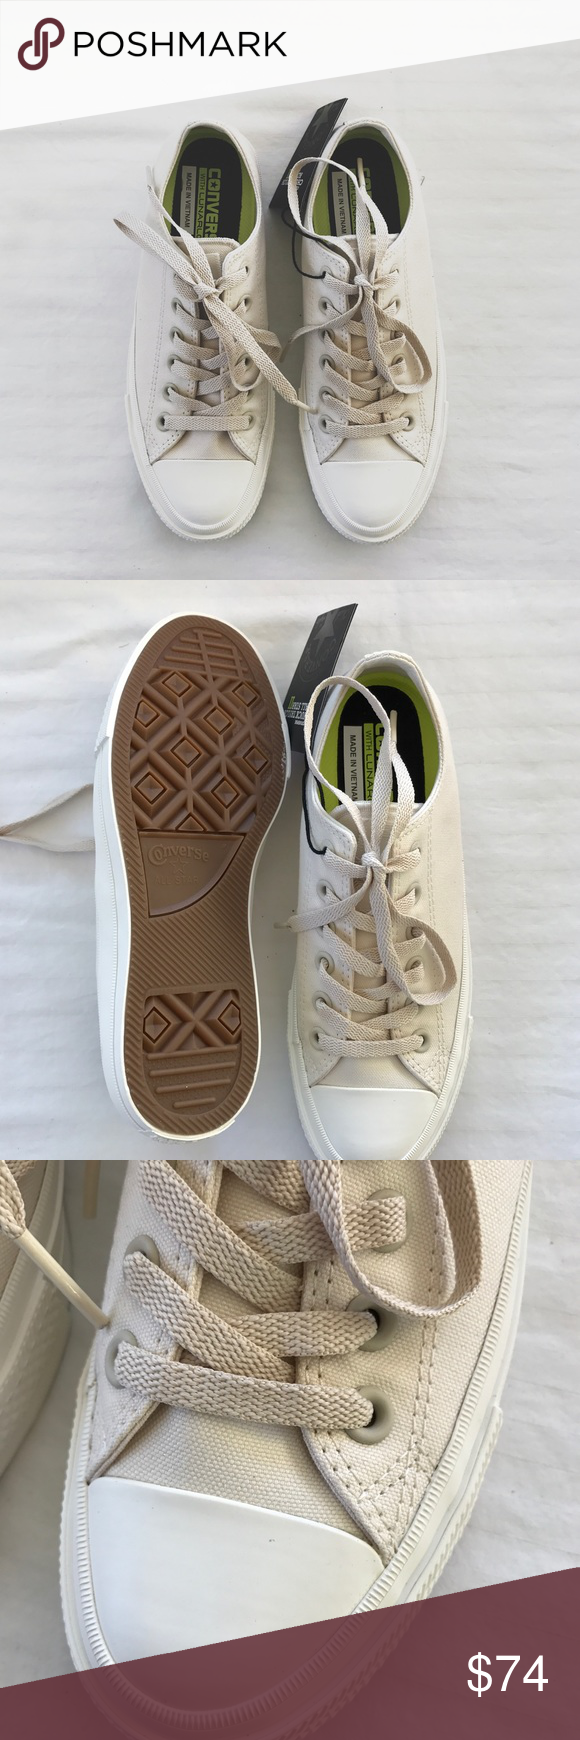 787cbc96d0a71f Converse Chuck Taylor II Nude Sneakers •The Converse Chuck II updates the  iconic original with plush Nike Lunarlon cushioning